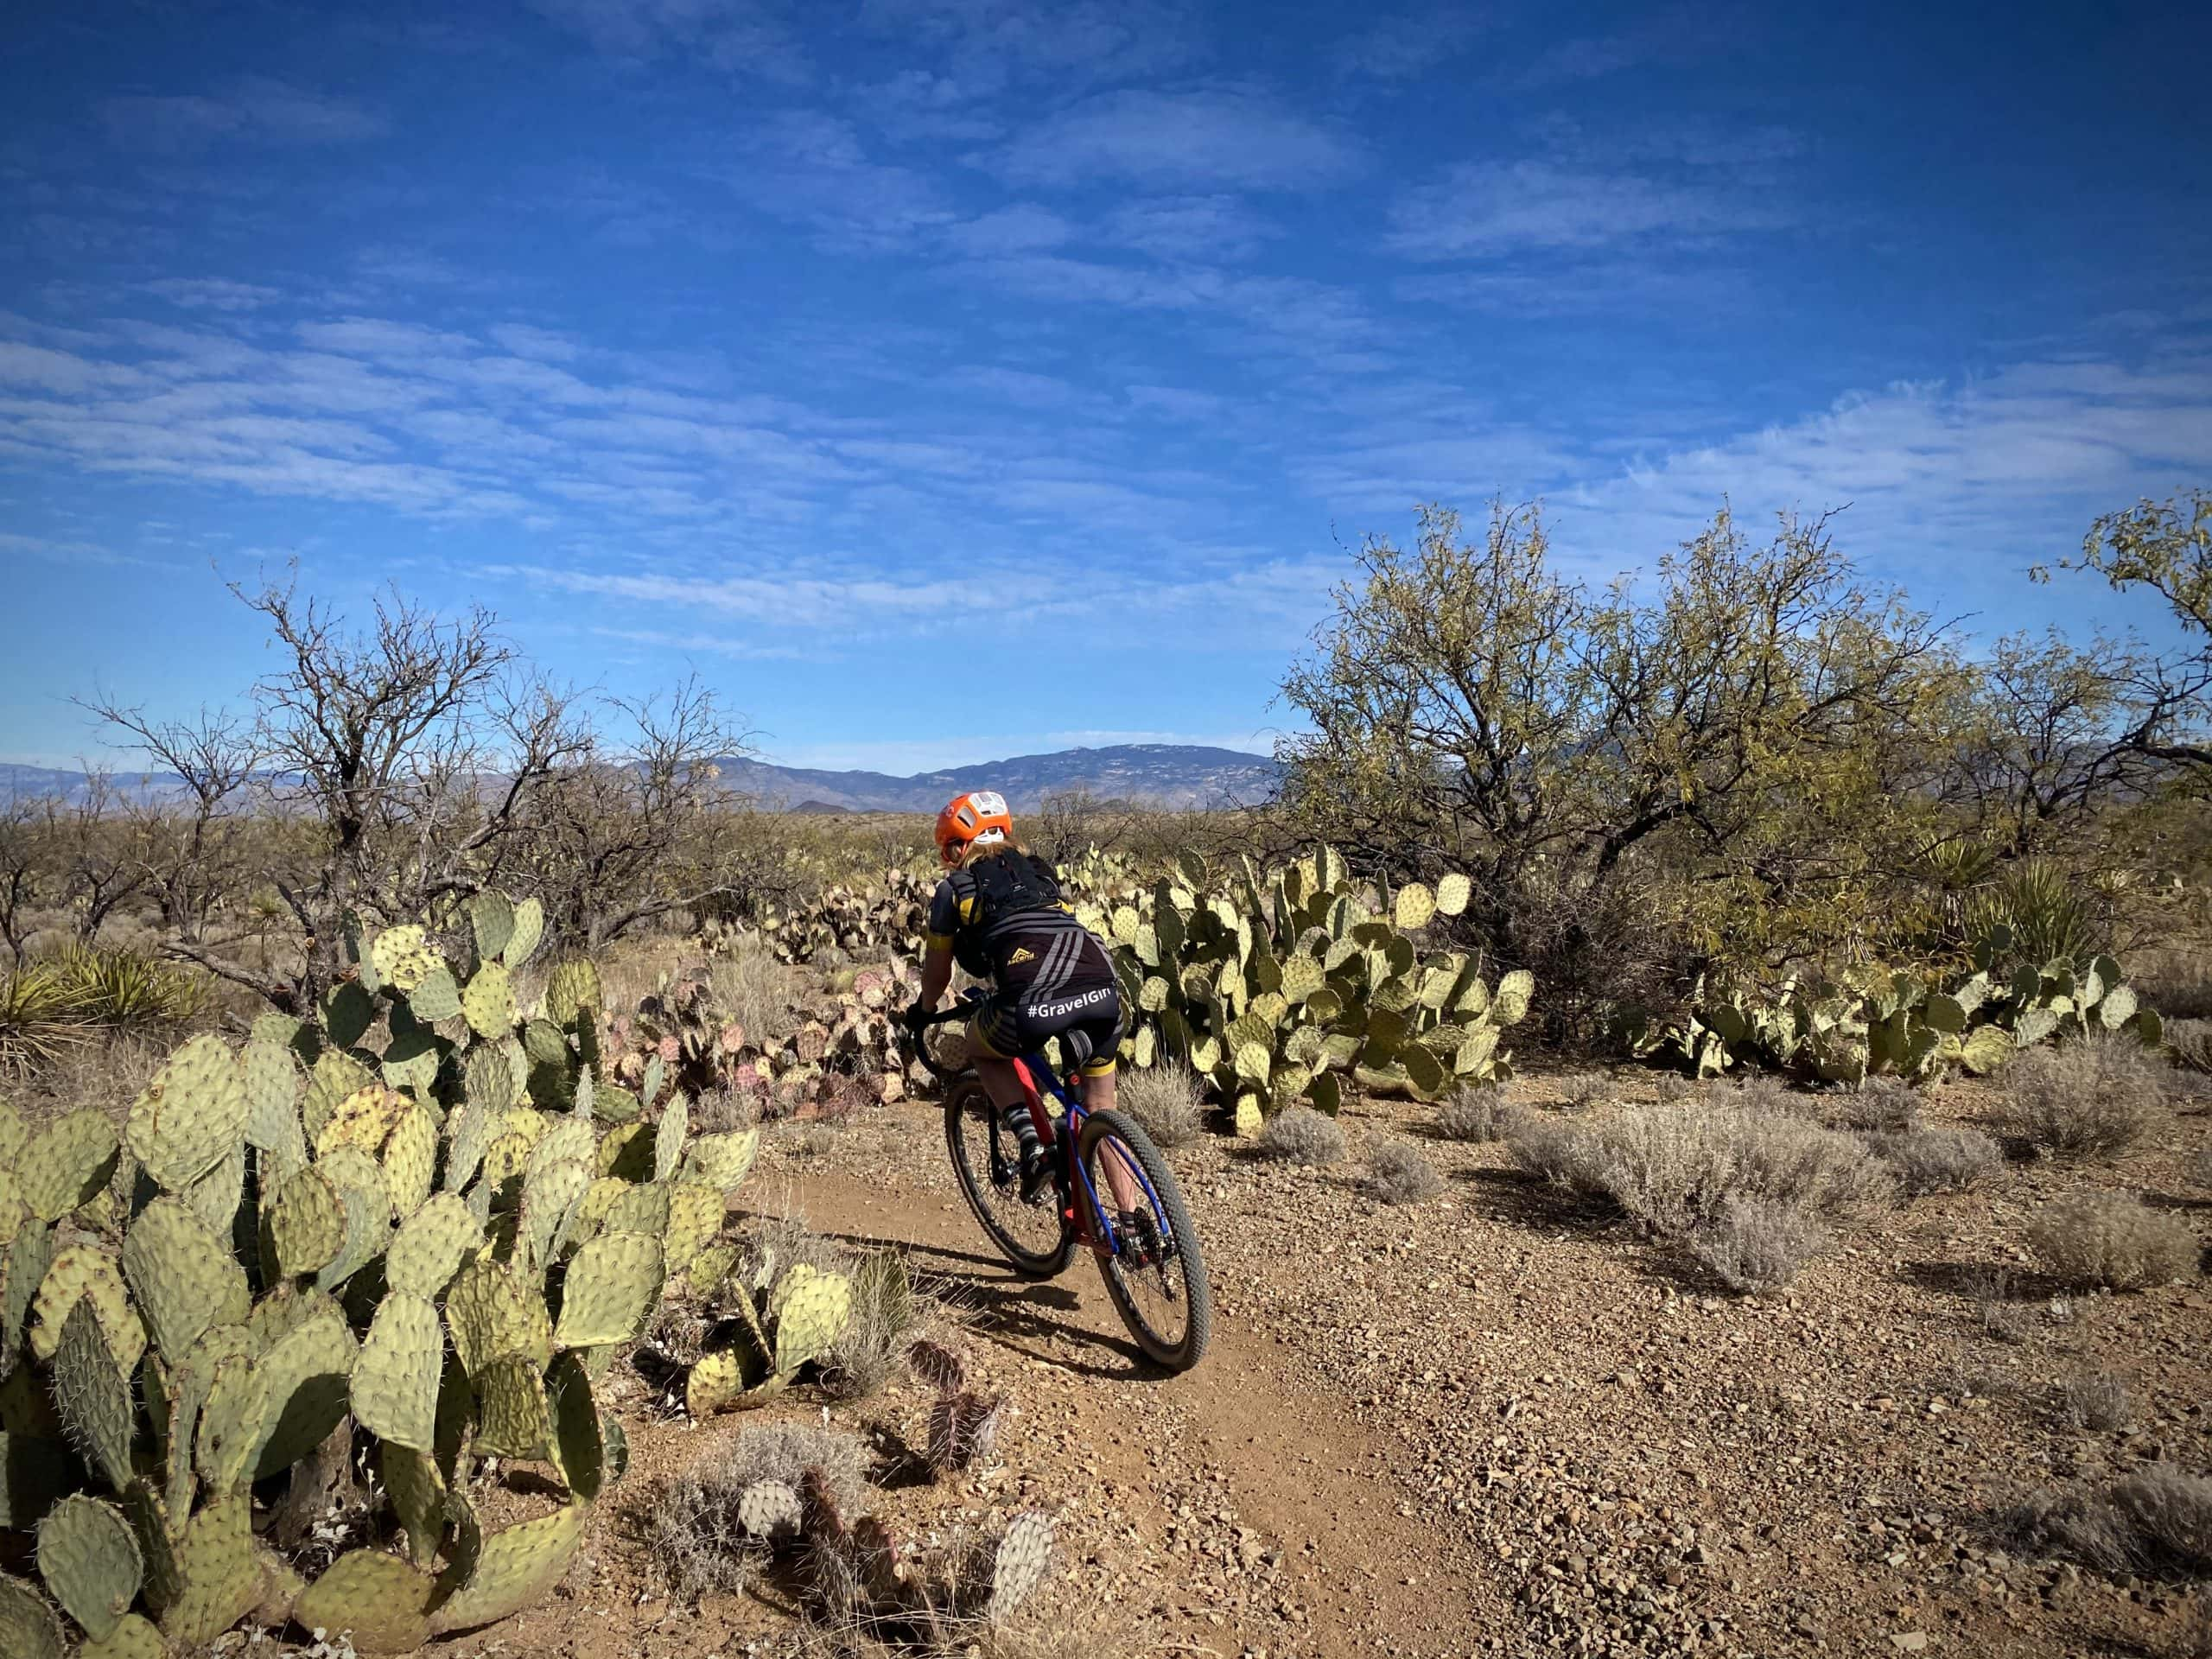 Gravel rider zipping between prickly pear cactus on the Arizona Trail.